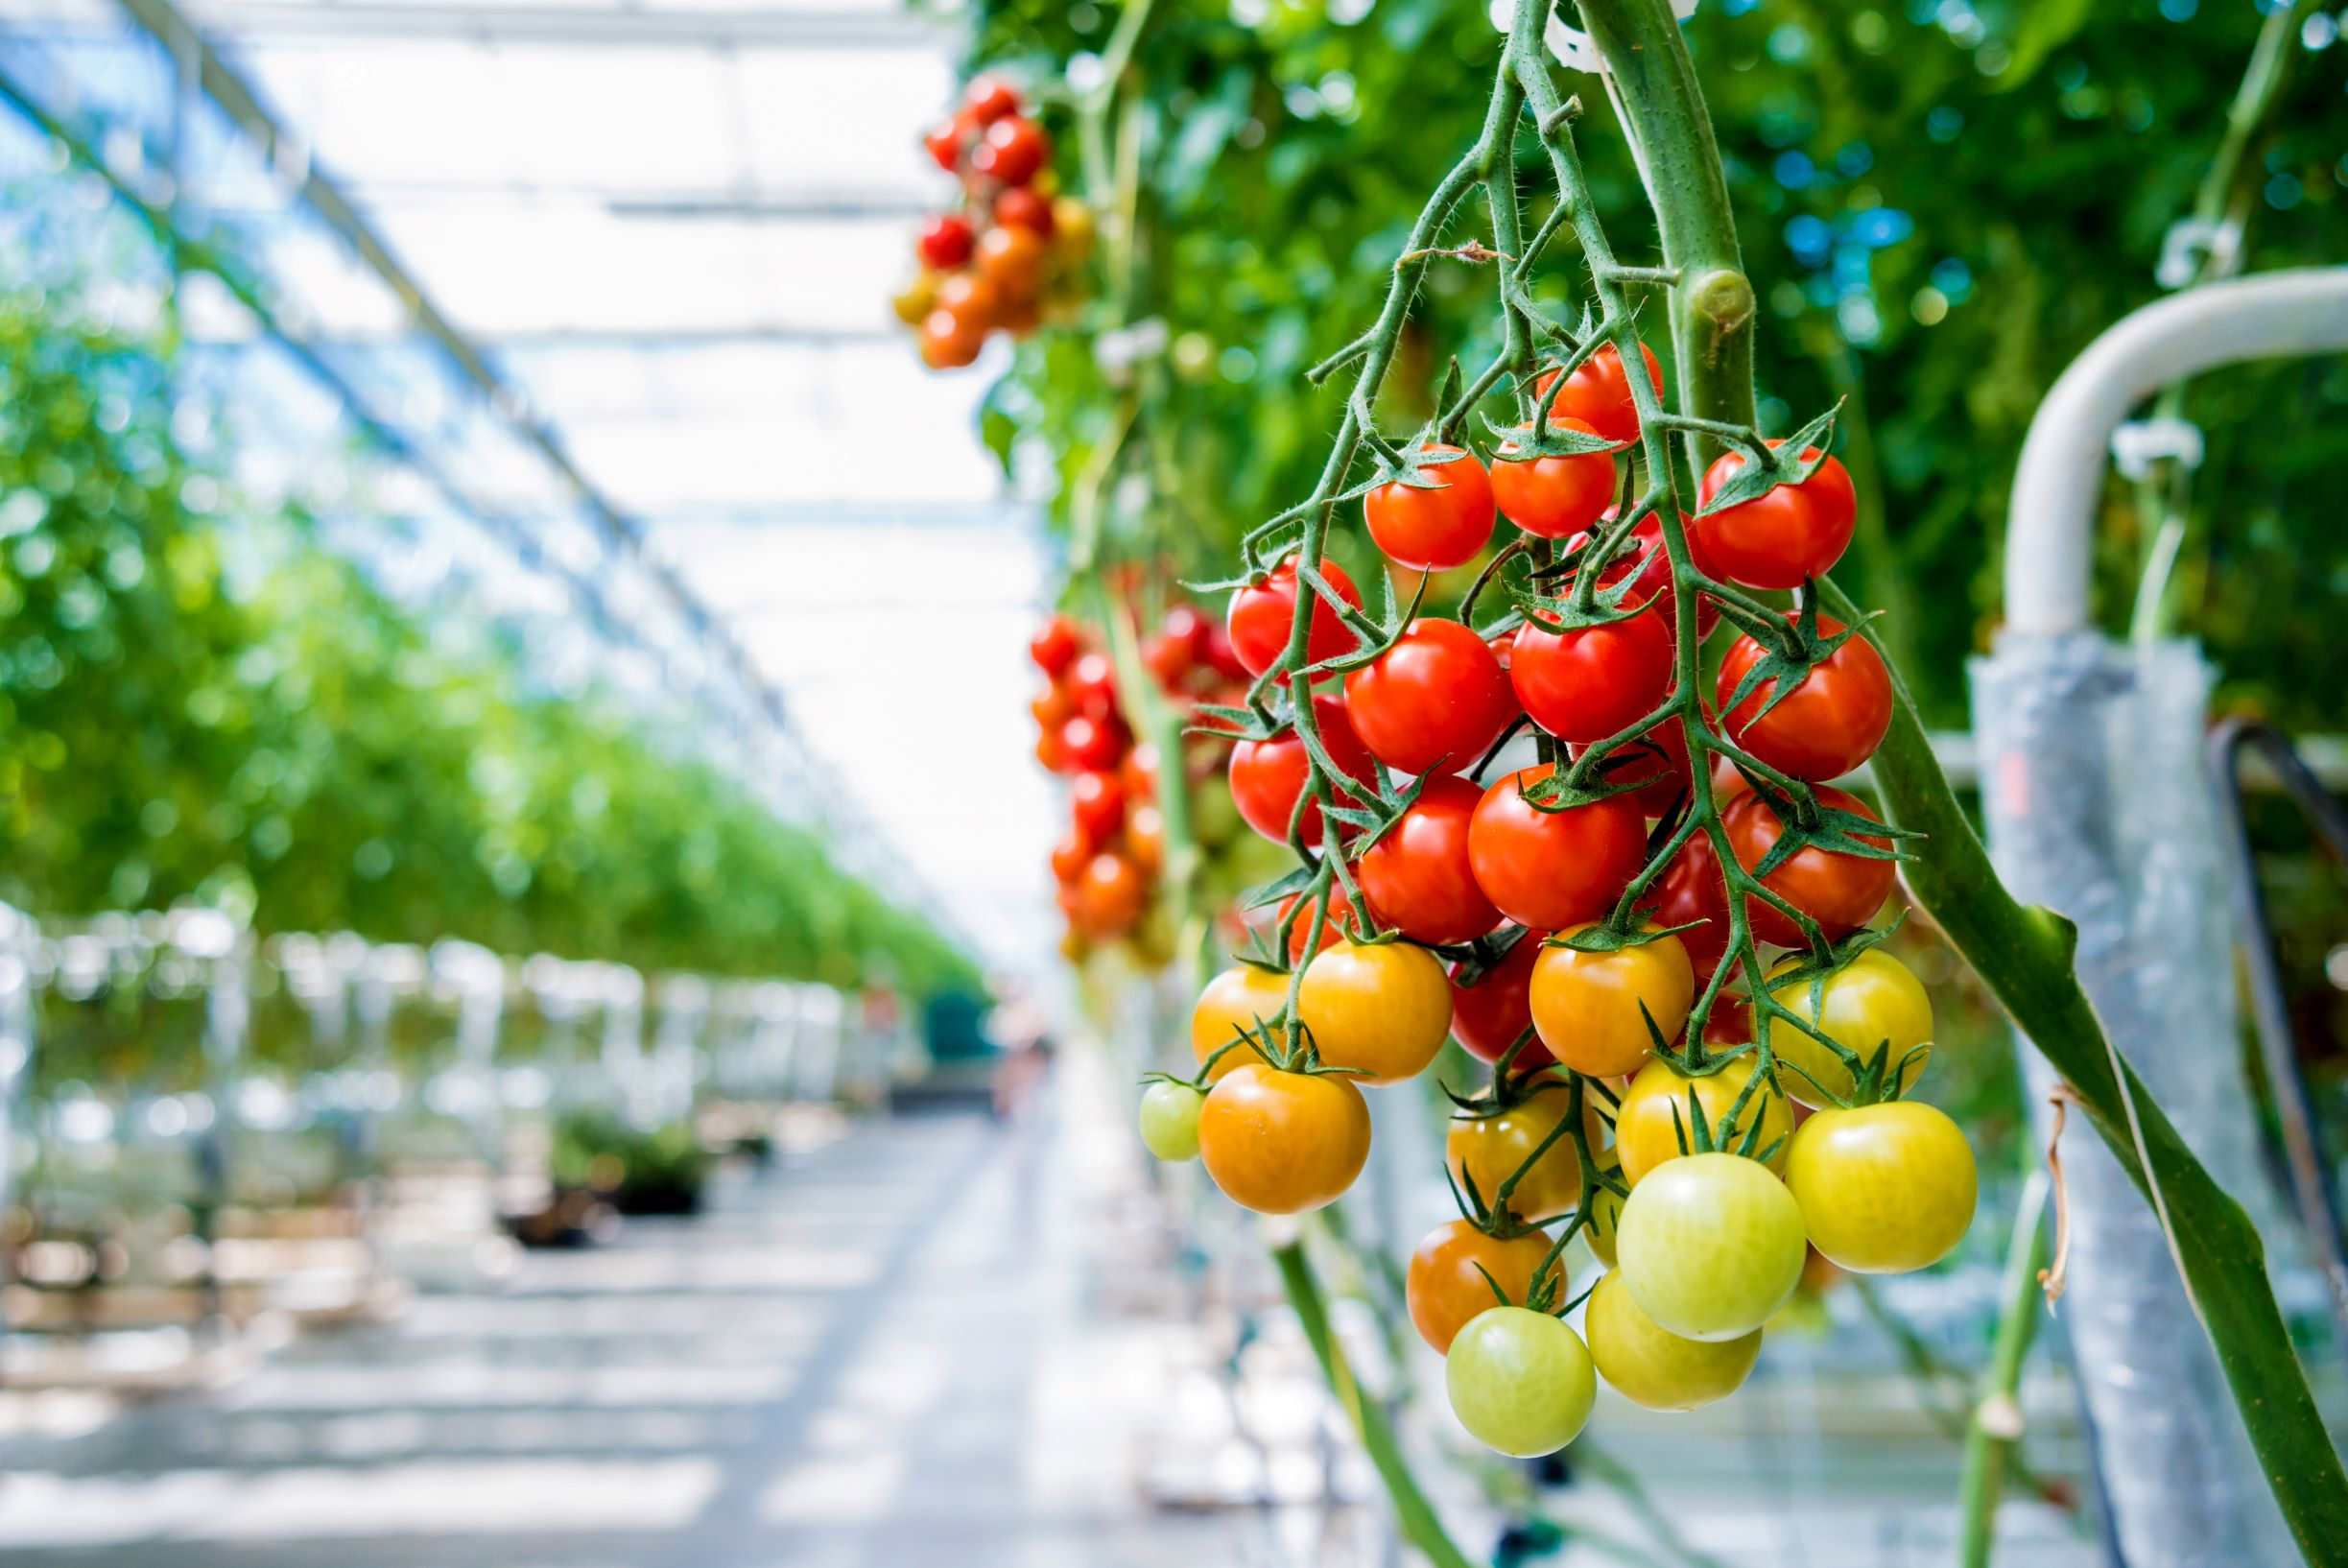 TOMATOES (low res) shutterstock_1104450200